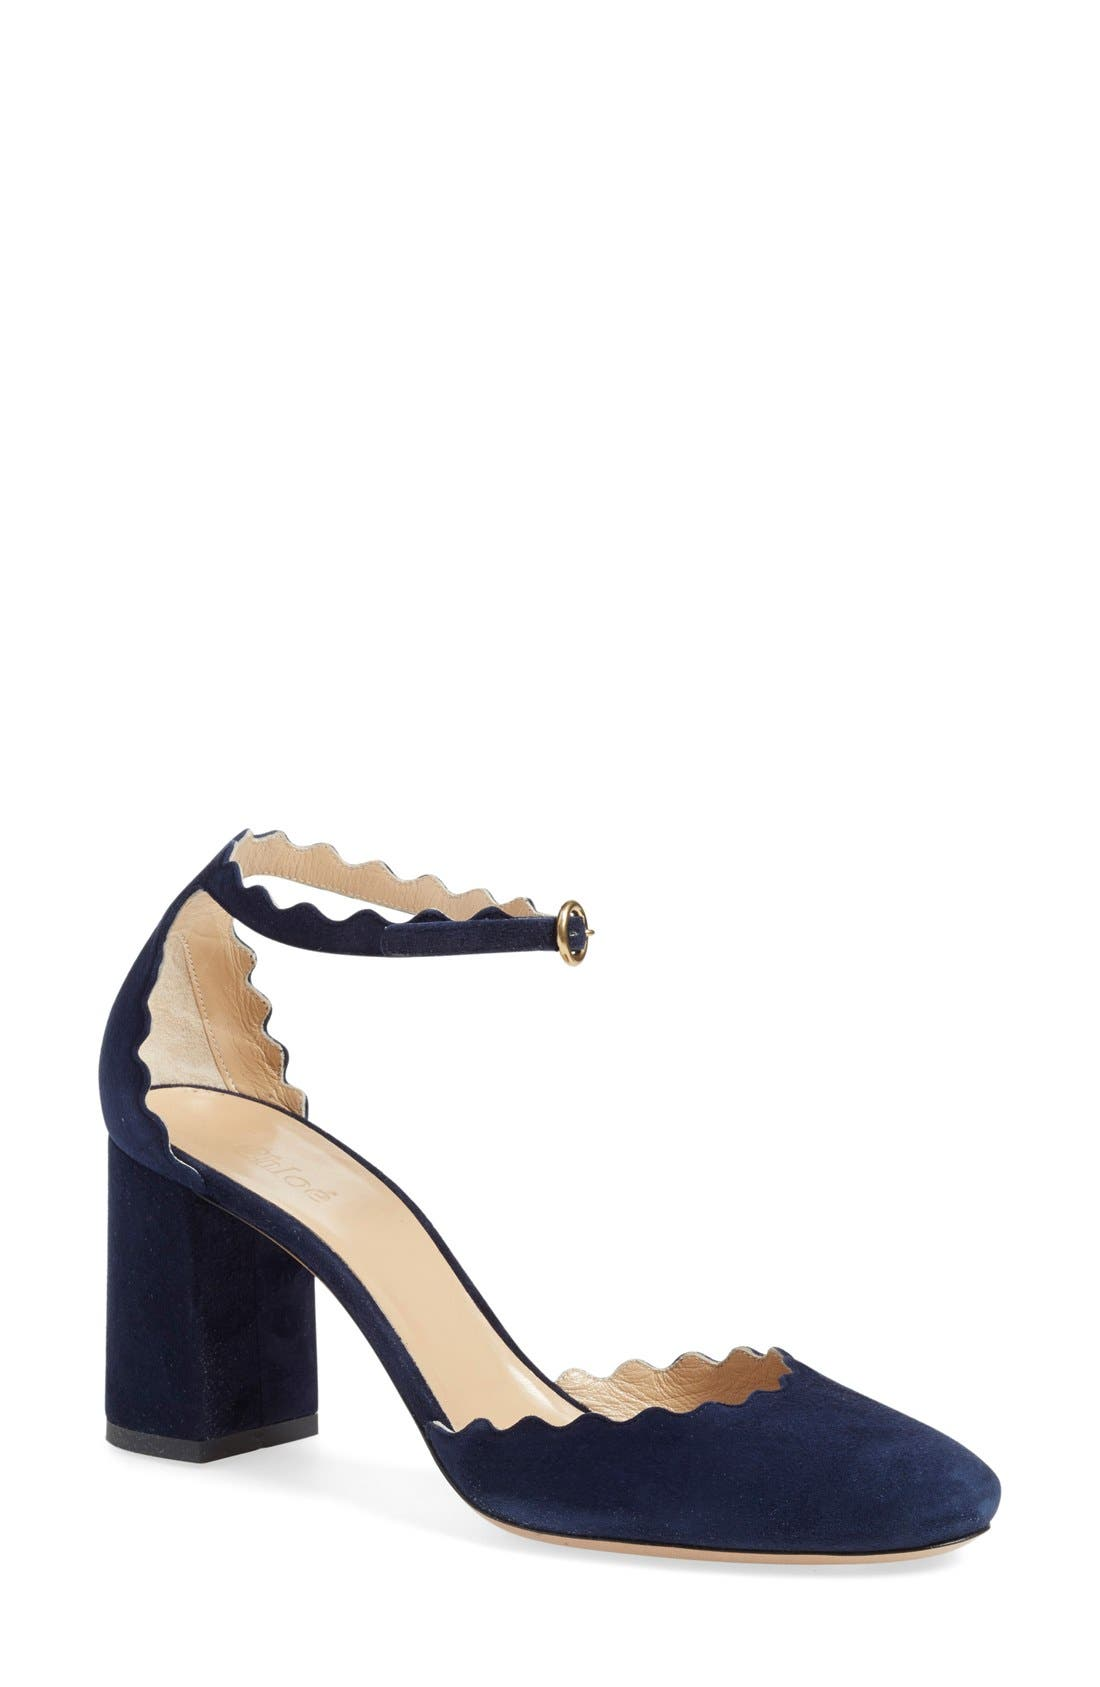 Alternate Image 1 Selected - Chloé Scalloped Ankle Strap d'Orsay Pump (Women)